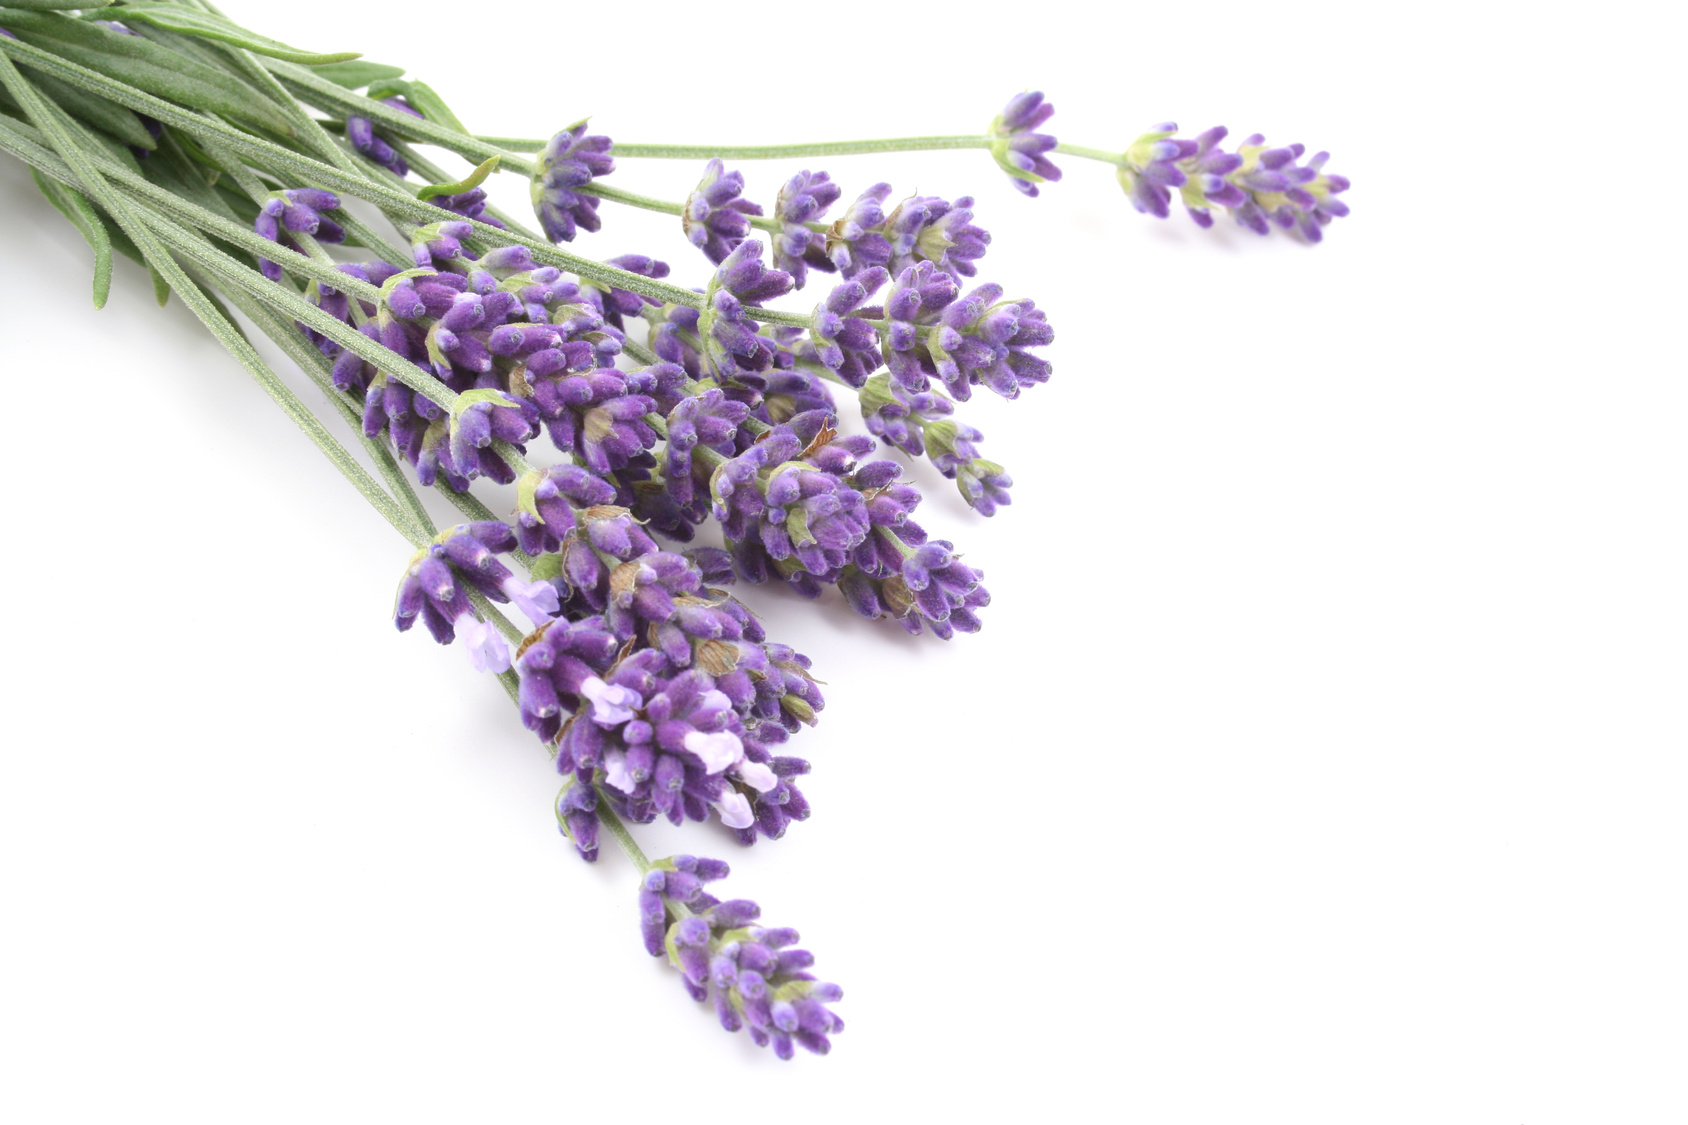 lavender essential oil improves anxiety